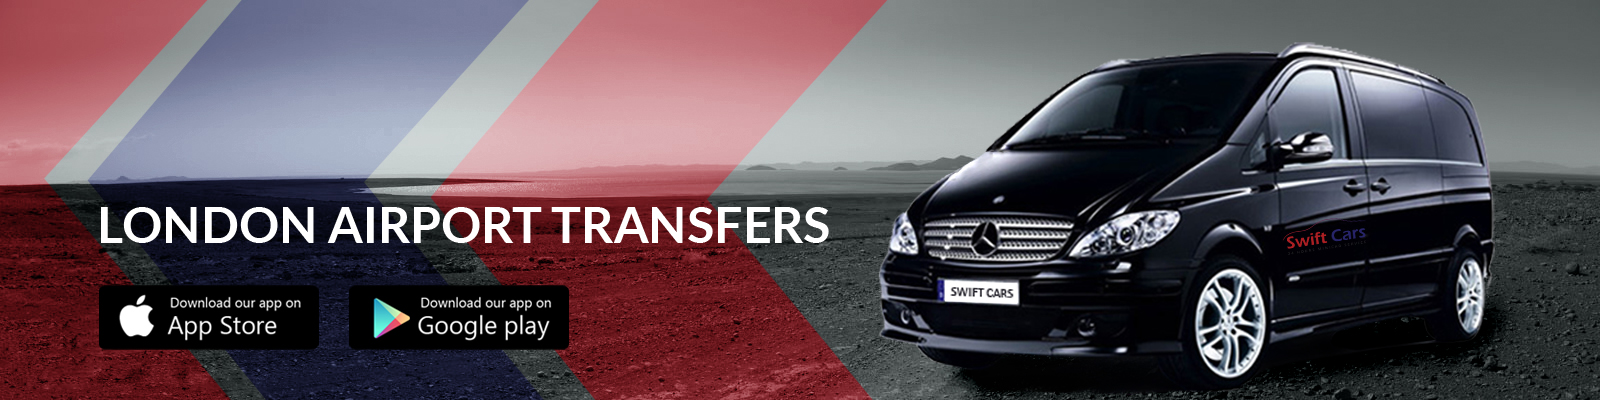 London_airport_transfers